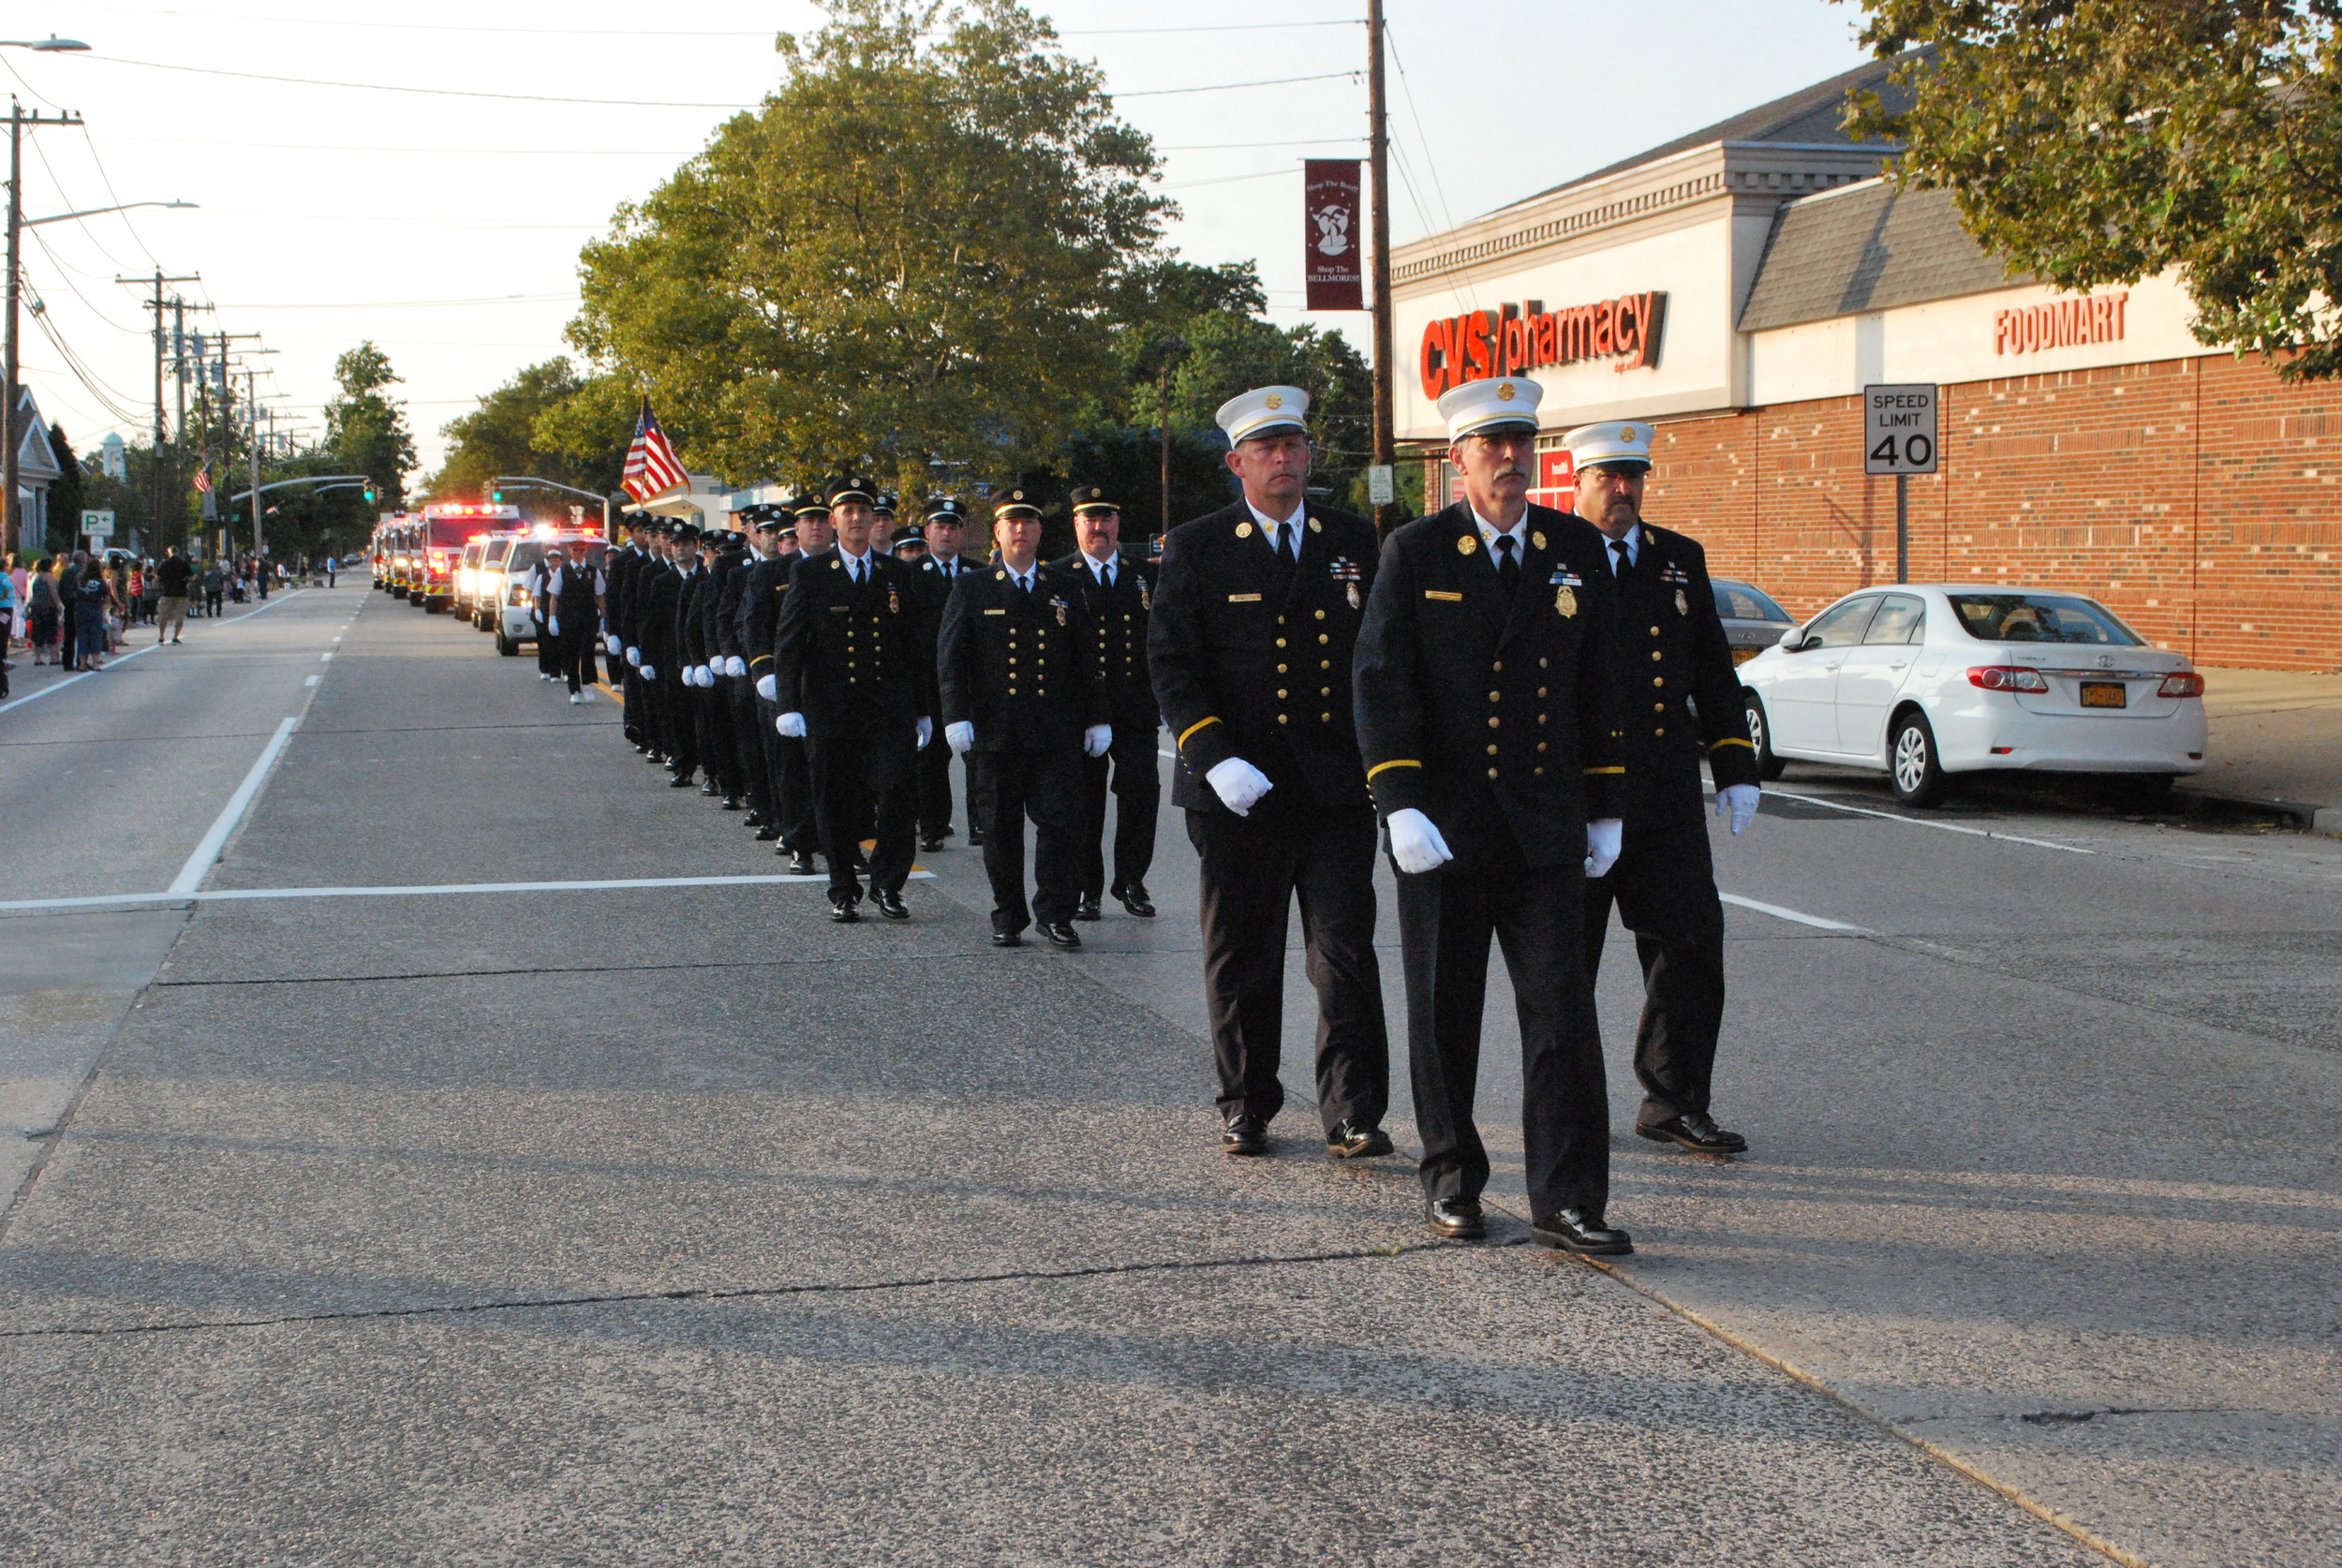 In honor of their 120th anniversary, the Bellmore Fire Department hosted the fire departments of the 6th Battalion during an annual parade.